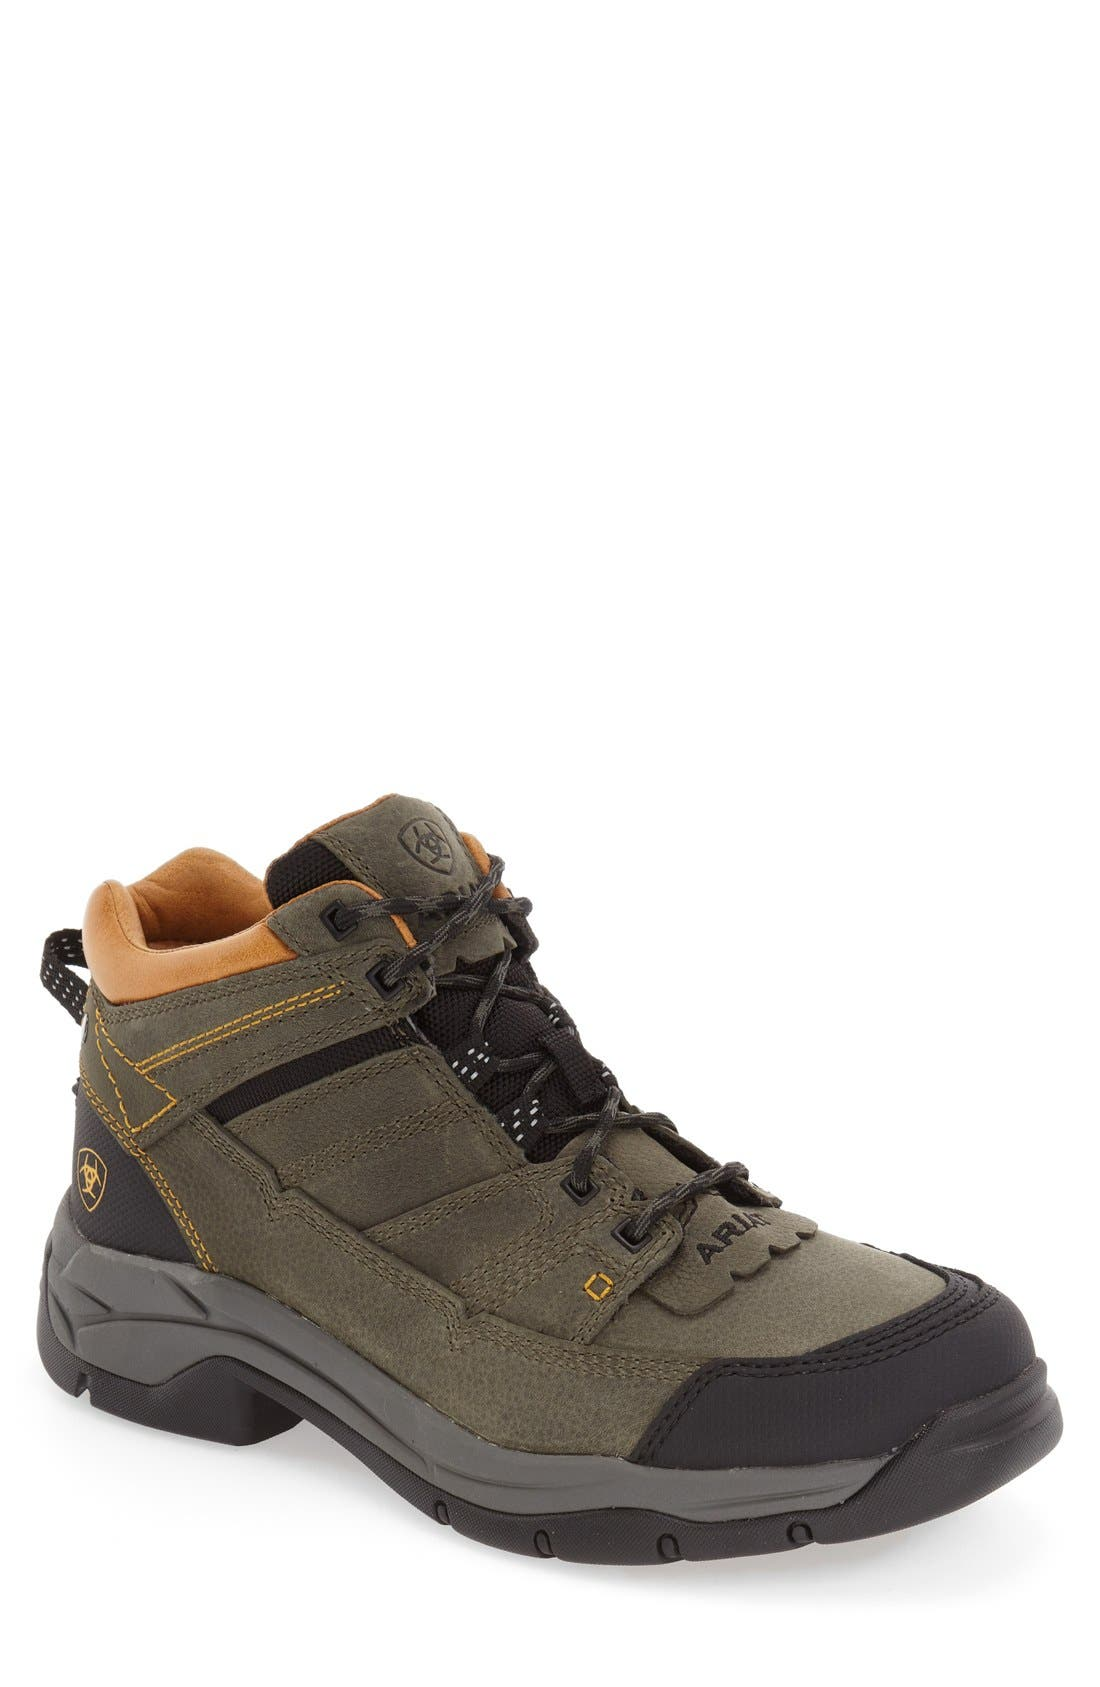 'Terrain Pro' Waterproof Hiking Boot,                             Main thumbnail 1, color,                             Shadow Leather